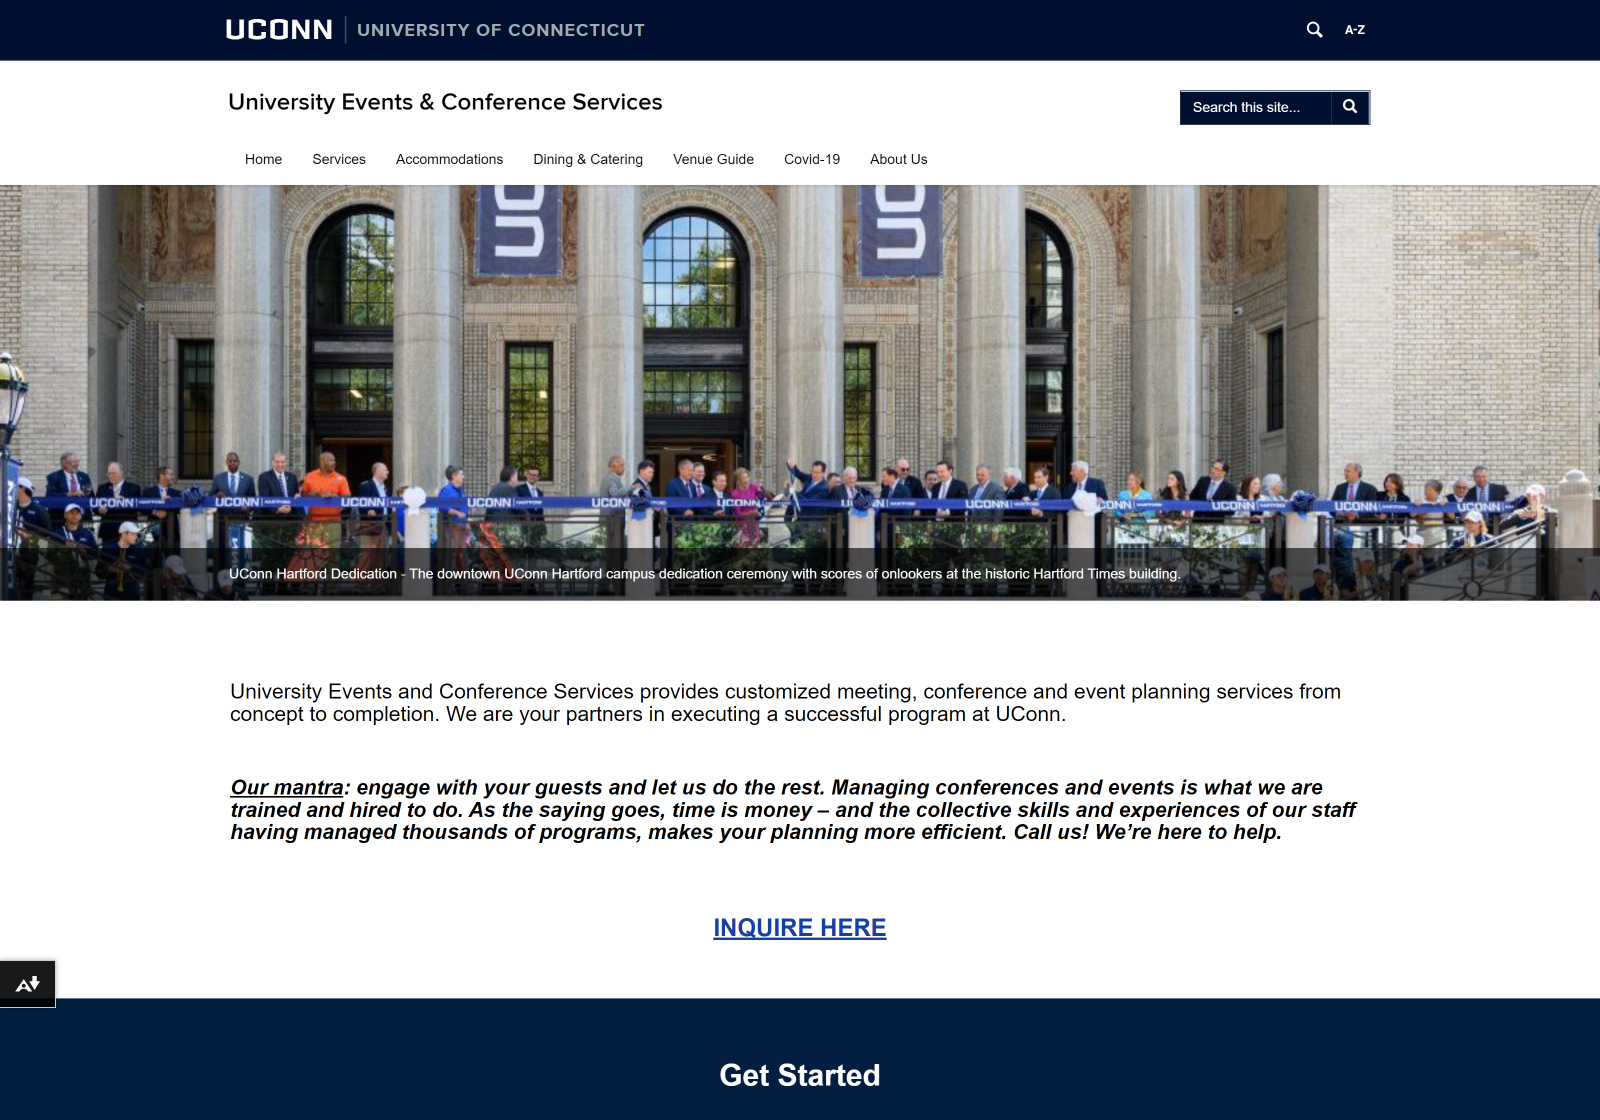 Desktop view of the UConn Events and Conference Services website